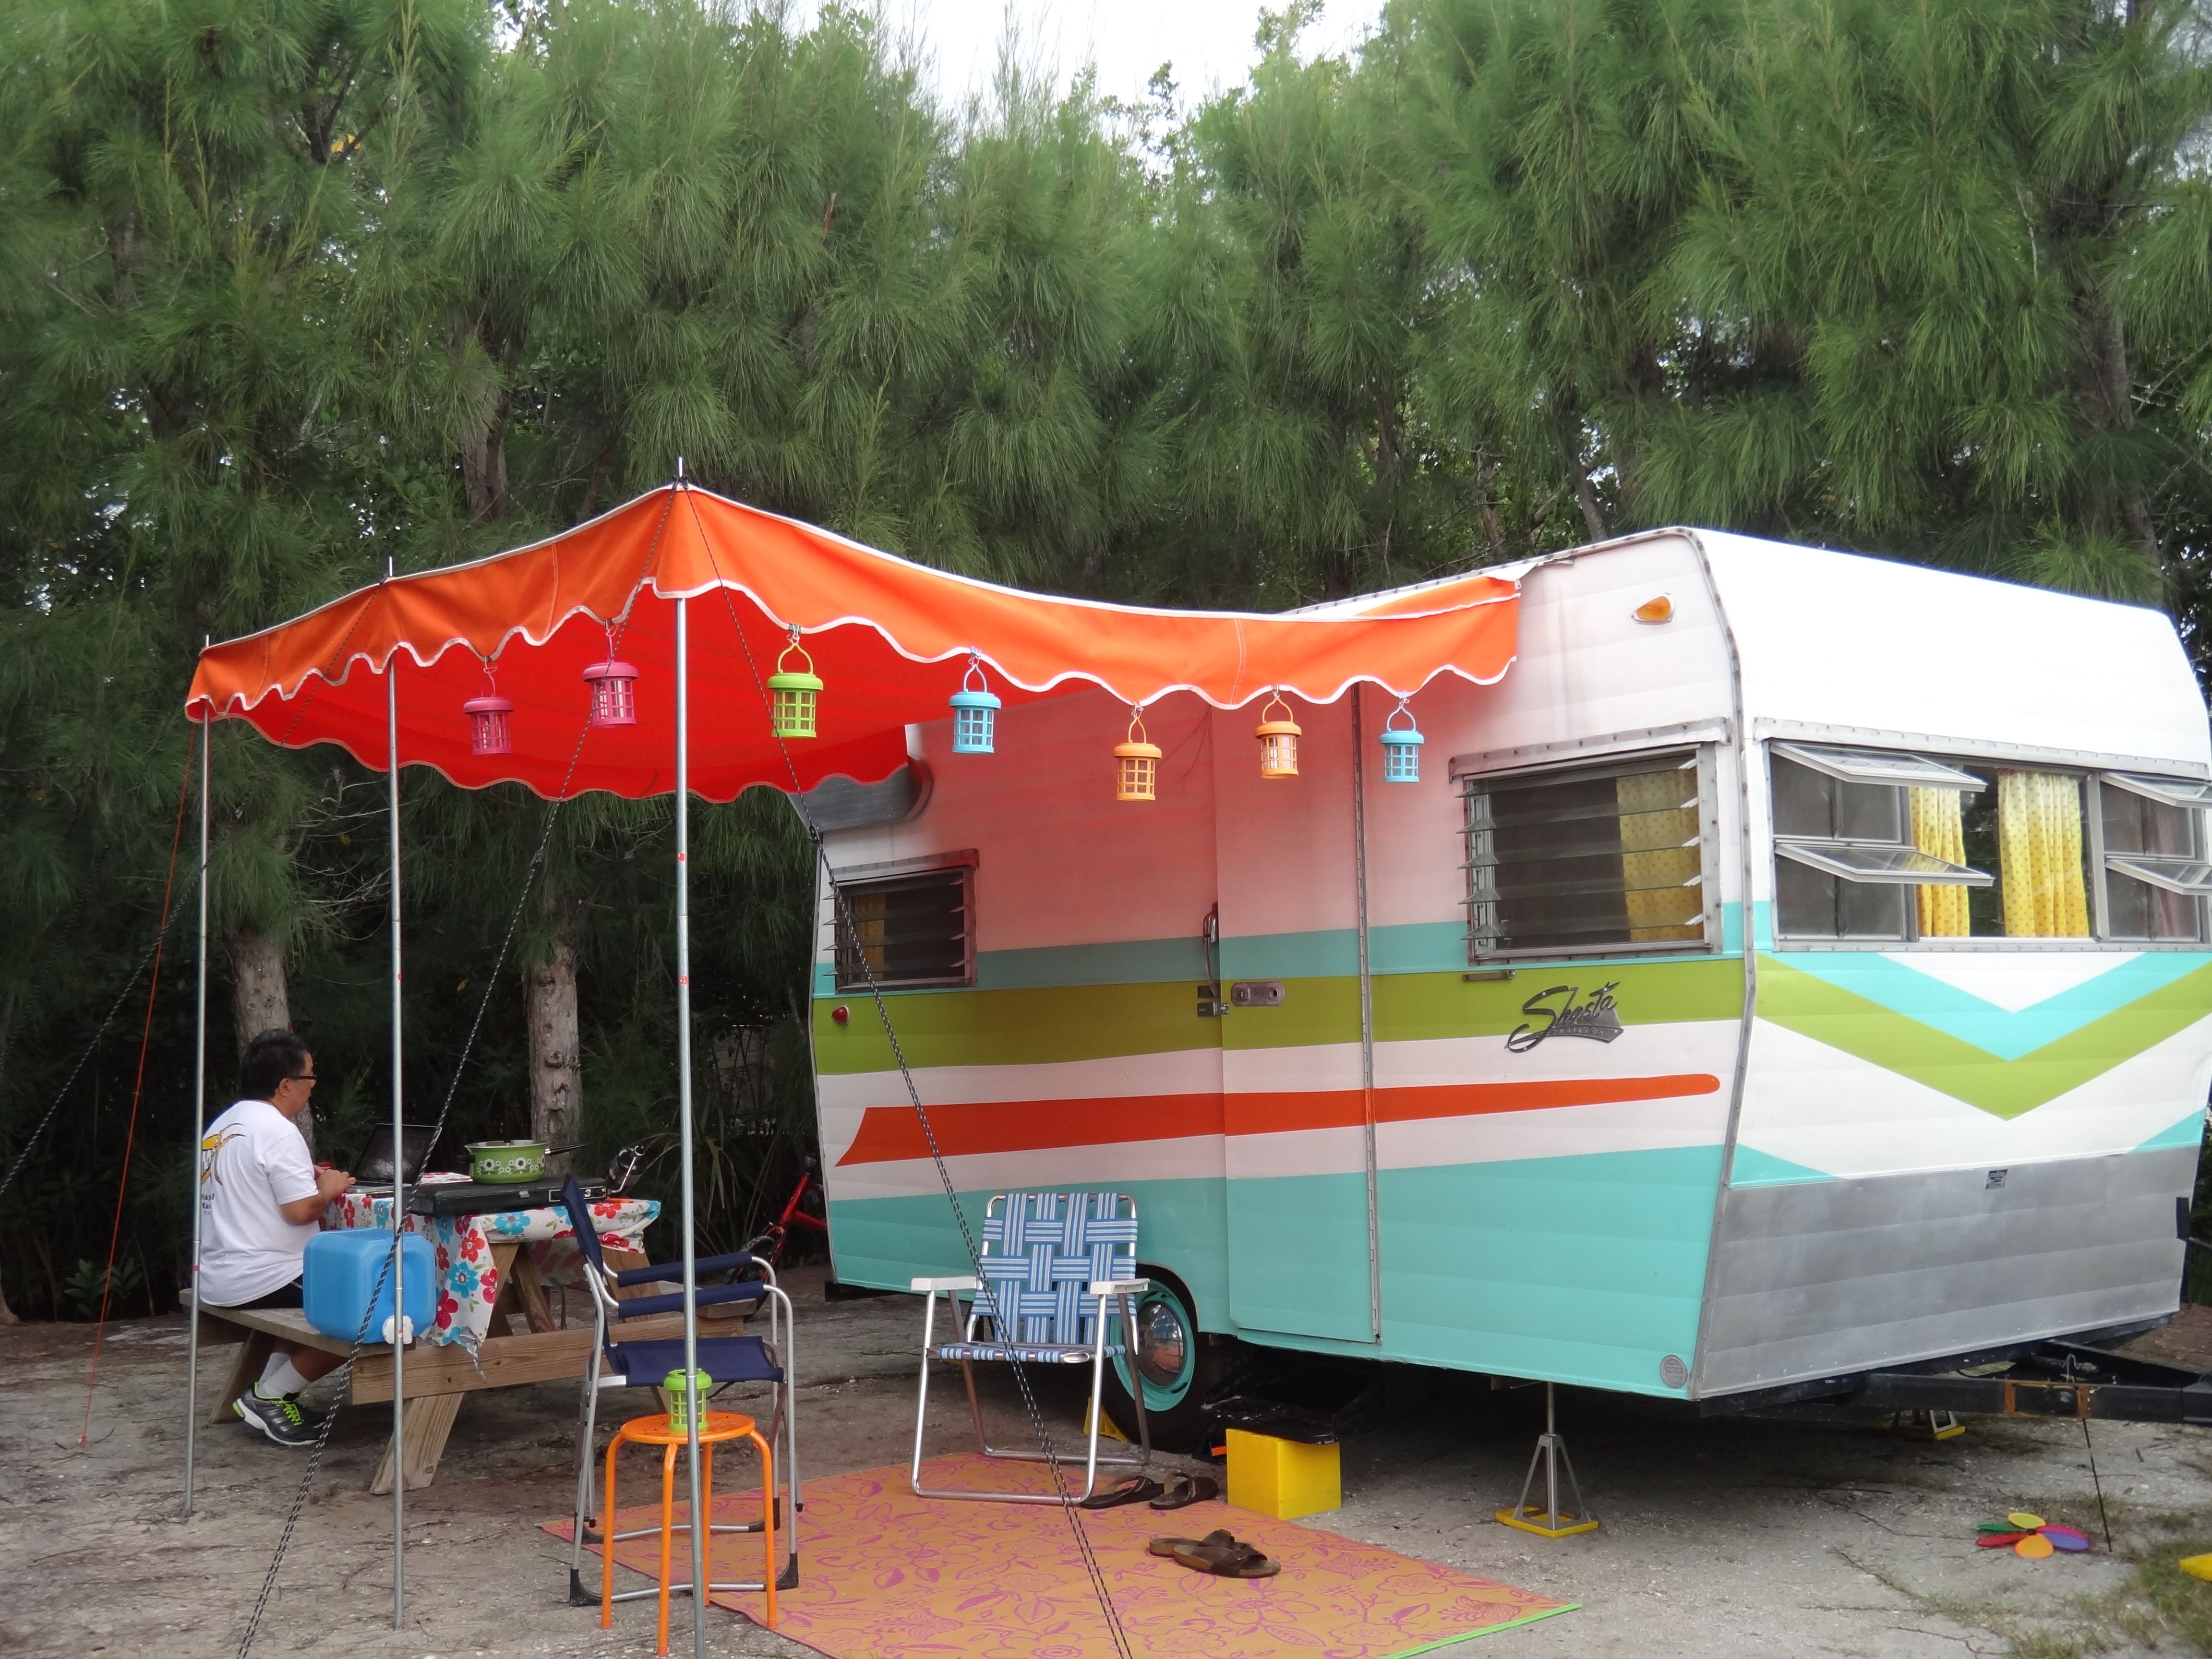 Suzy Q A 65 Shasta Airflyte Had Her Maiden Voyage From Ontario Canada To Sanibel Island Florida O Vintage Camper Vintage Travel Trailers Vintage Trailers